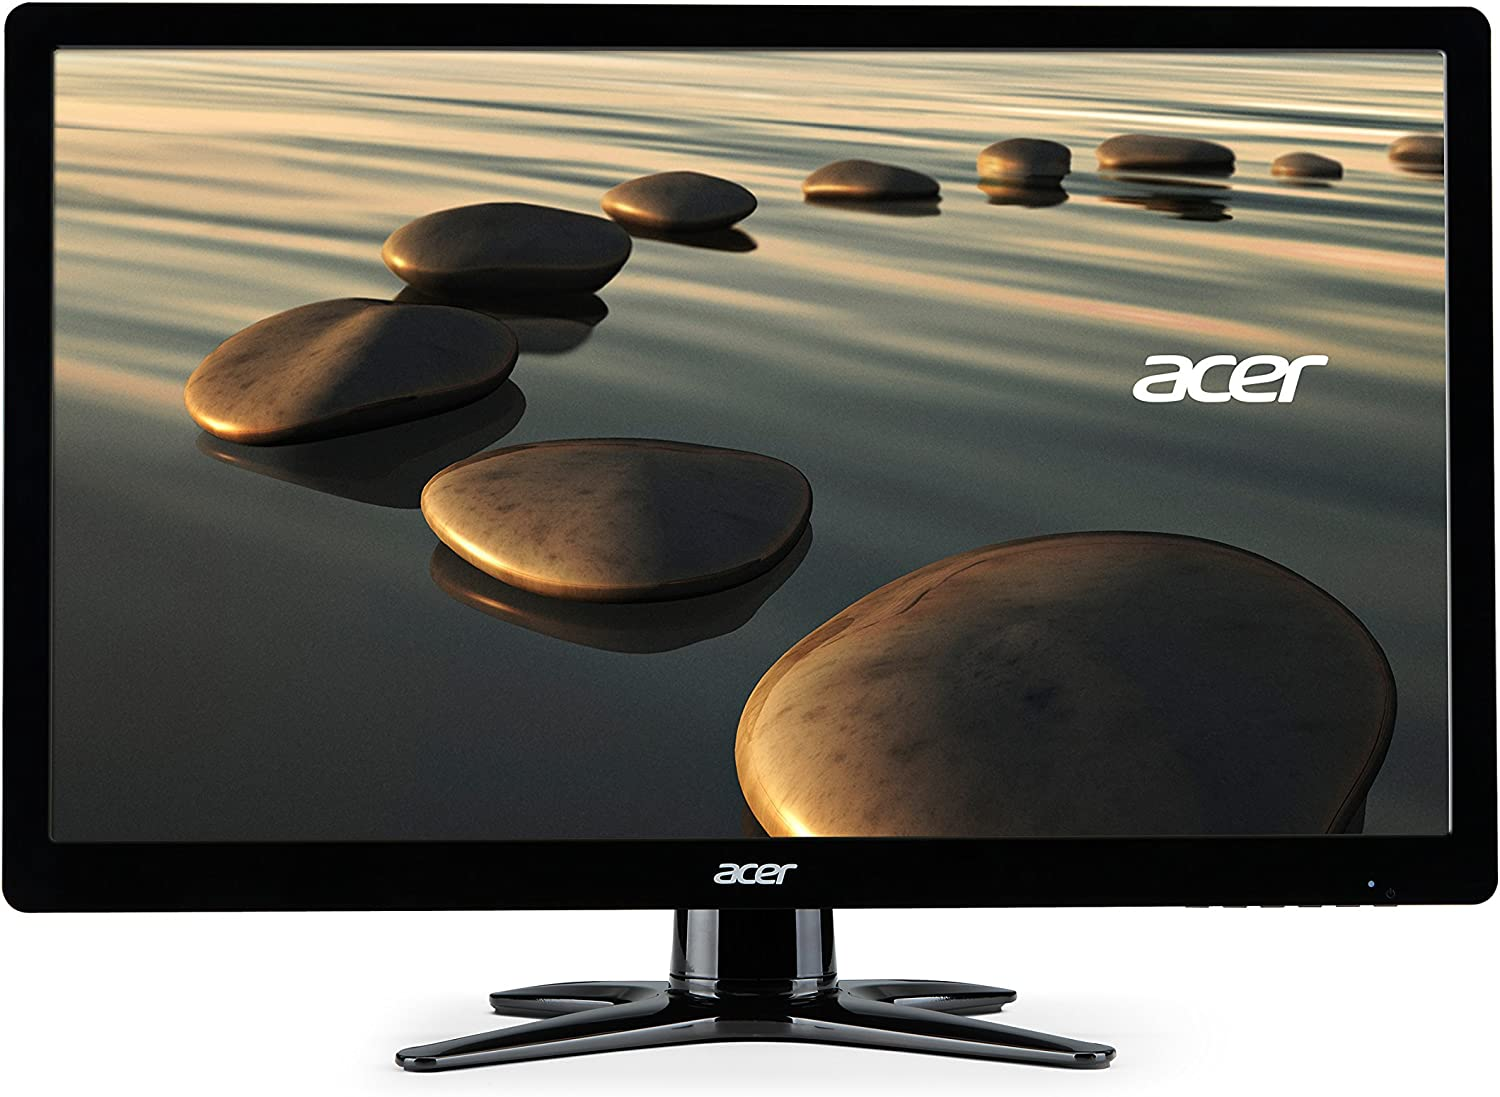 Acer G226HQL 21.5-Inch Screen LED Monitor